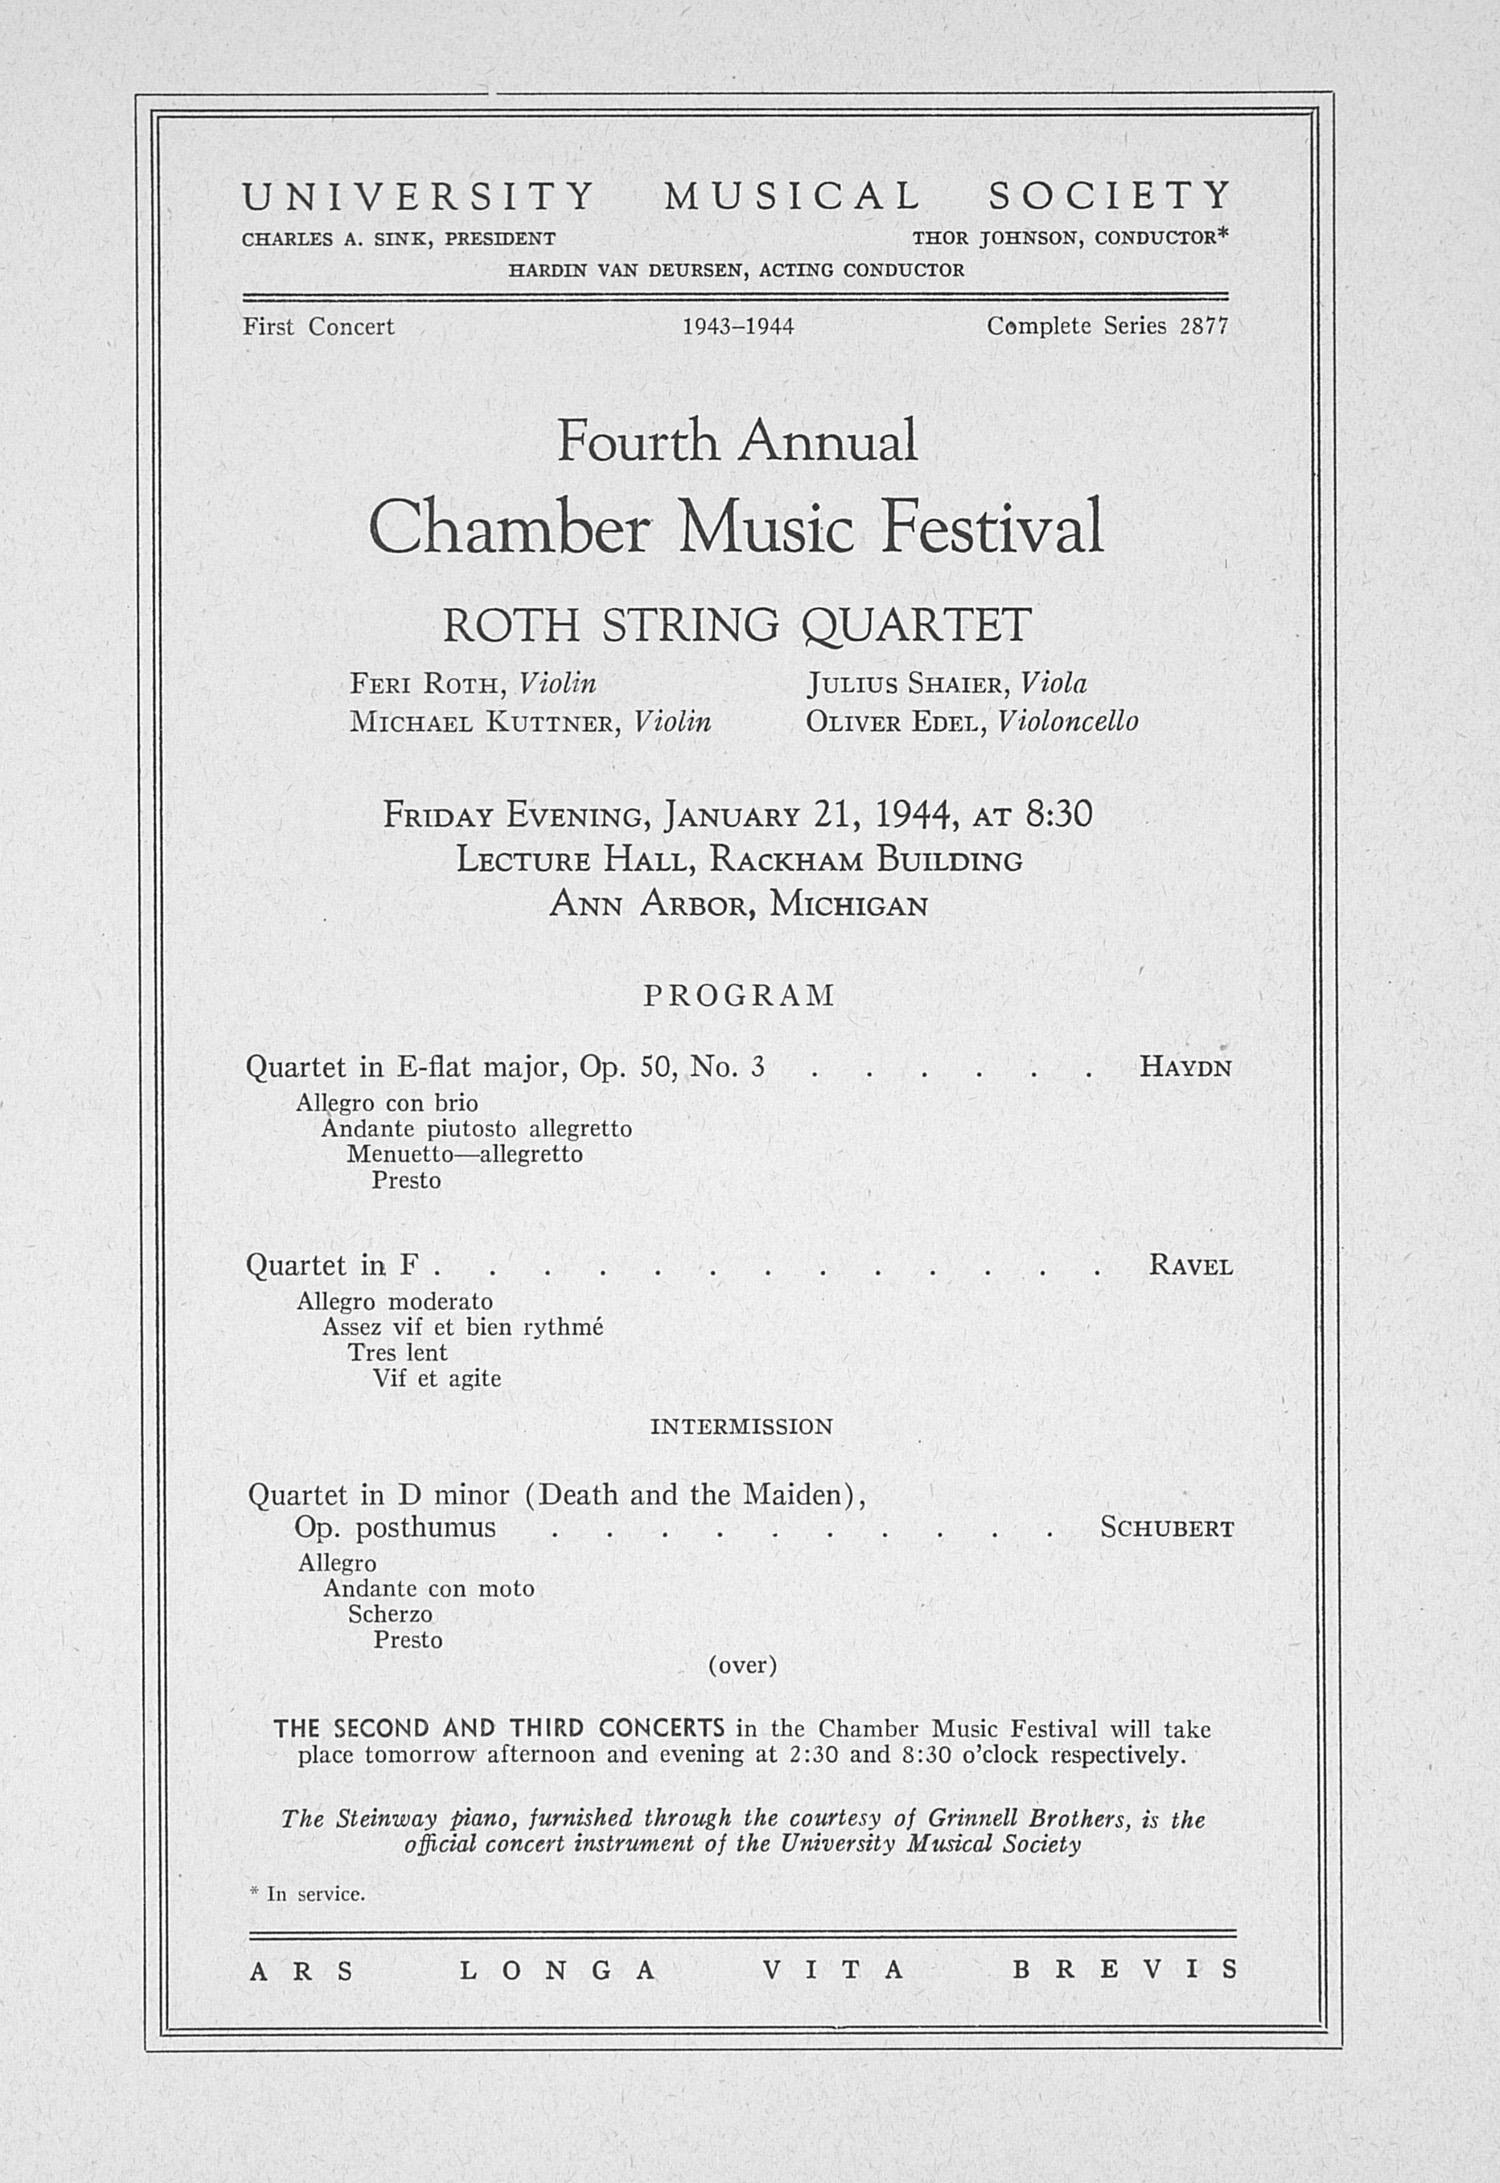 UMS Concert Program, January 21, 1944: Fourth Annual Chamber Music Festival -- Roth String Quartet image